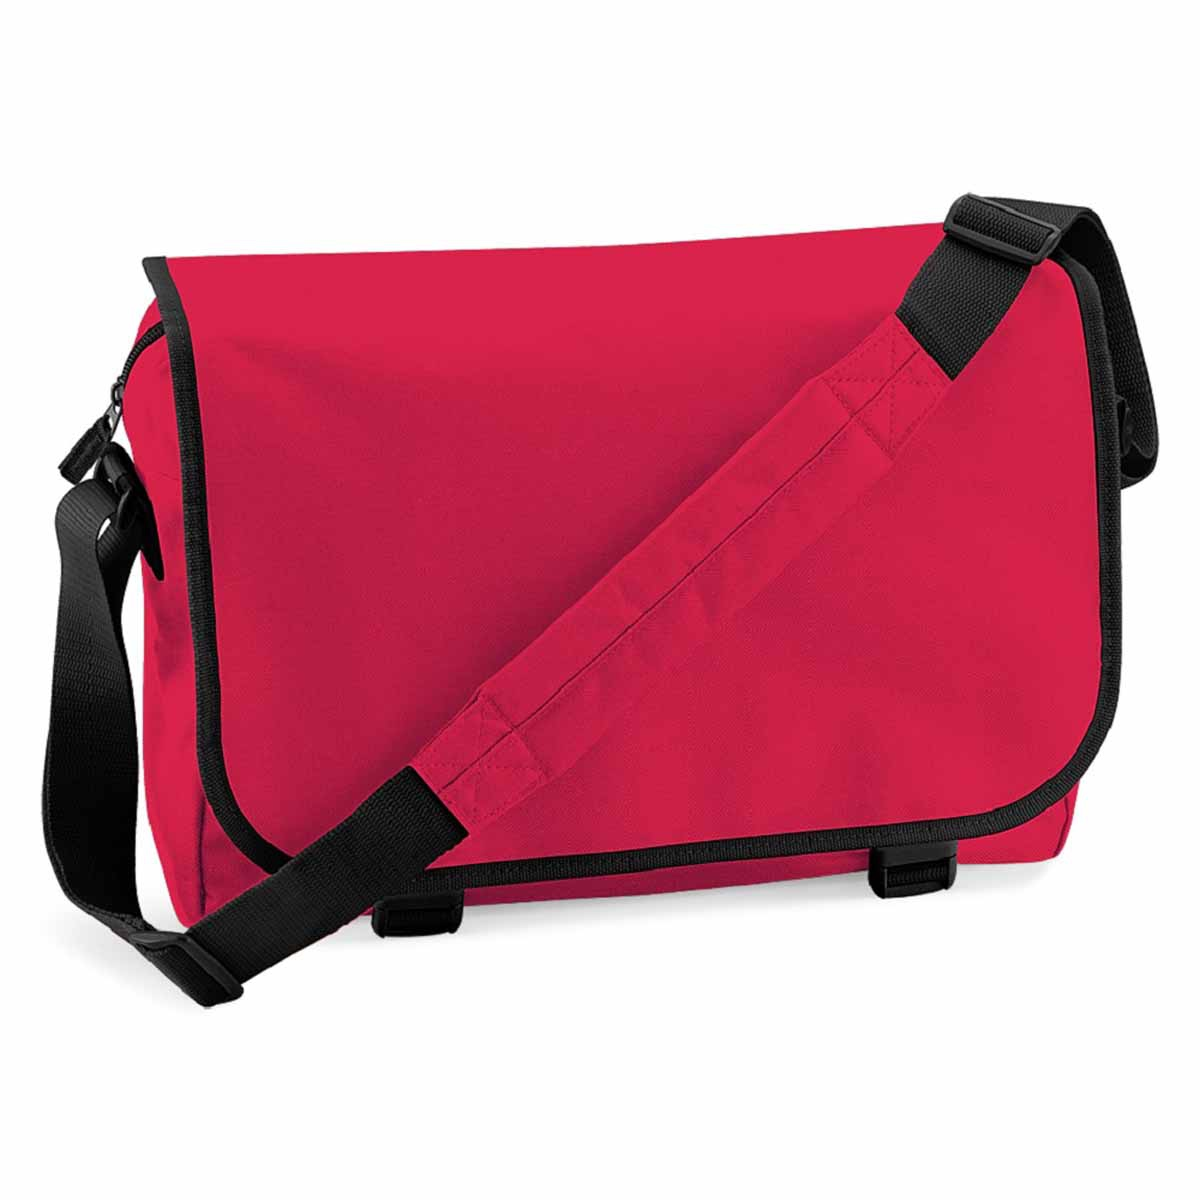 Sac bandoulière sacoche porte documents -  BG21 - rouge bright